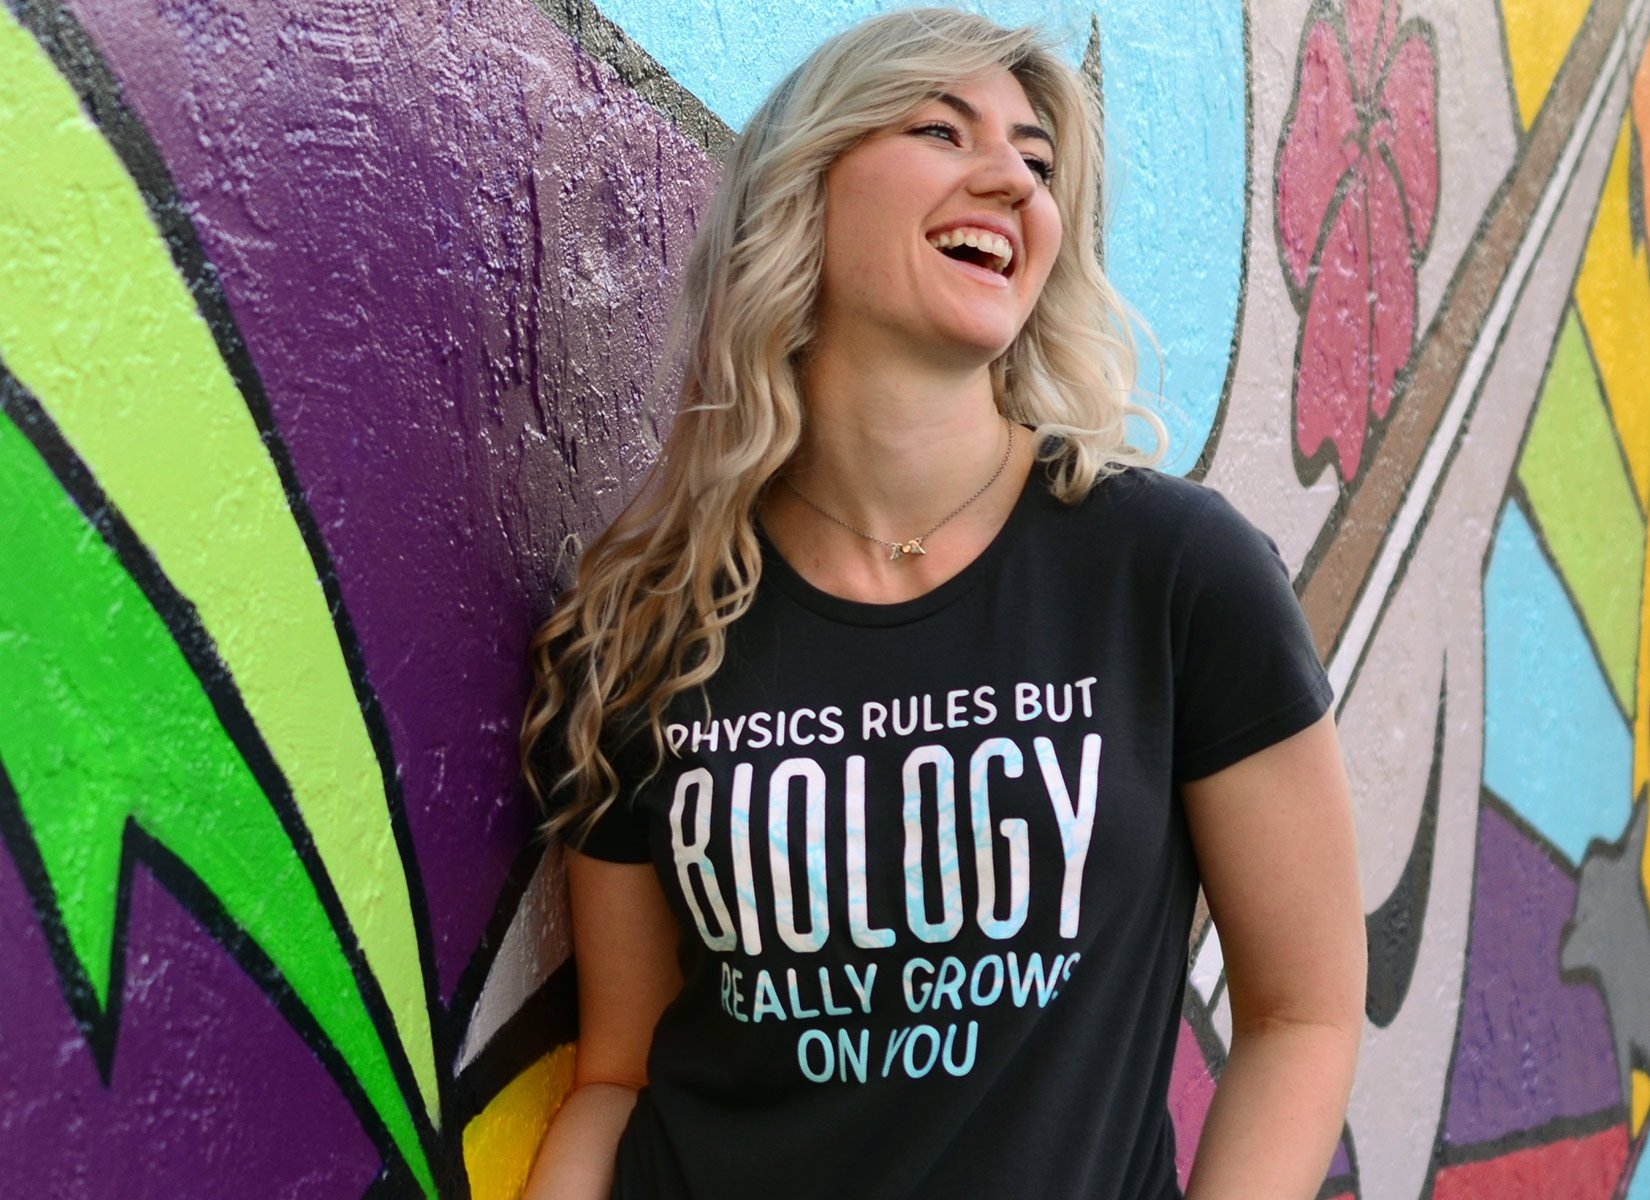 Biology Really Grows On You on Womens T-Shirt